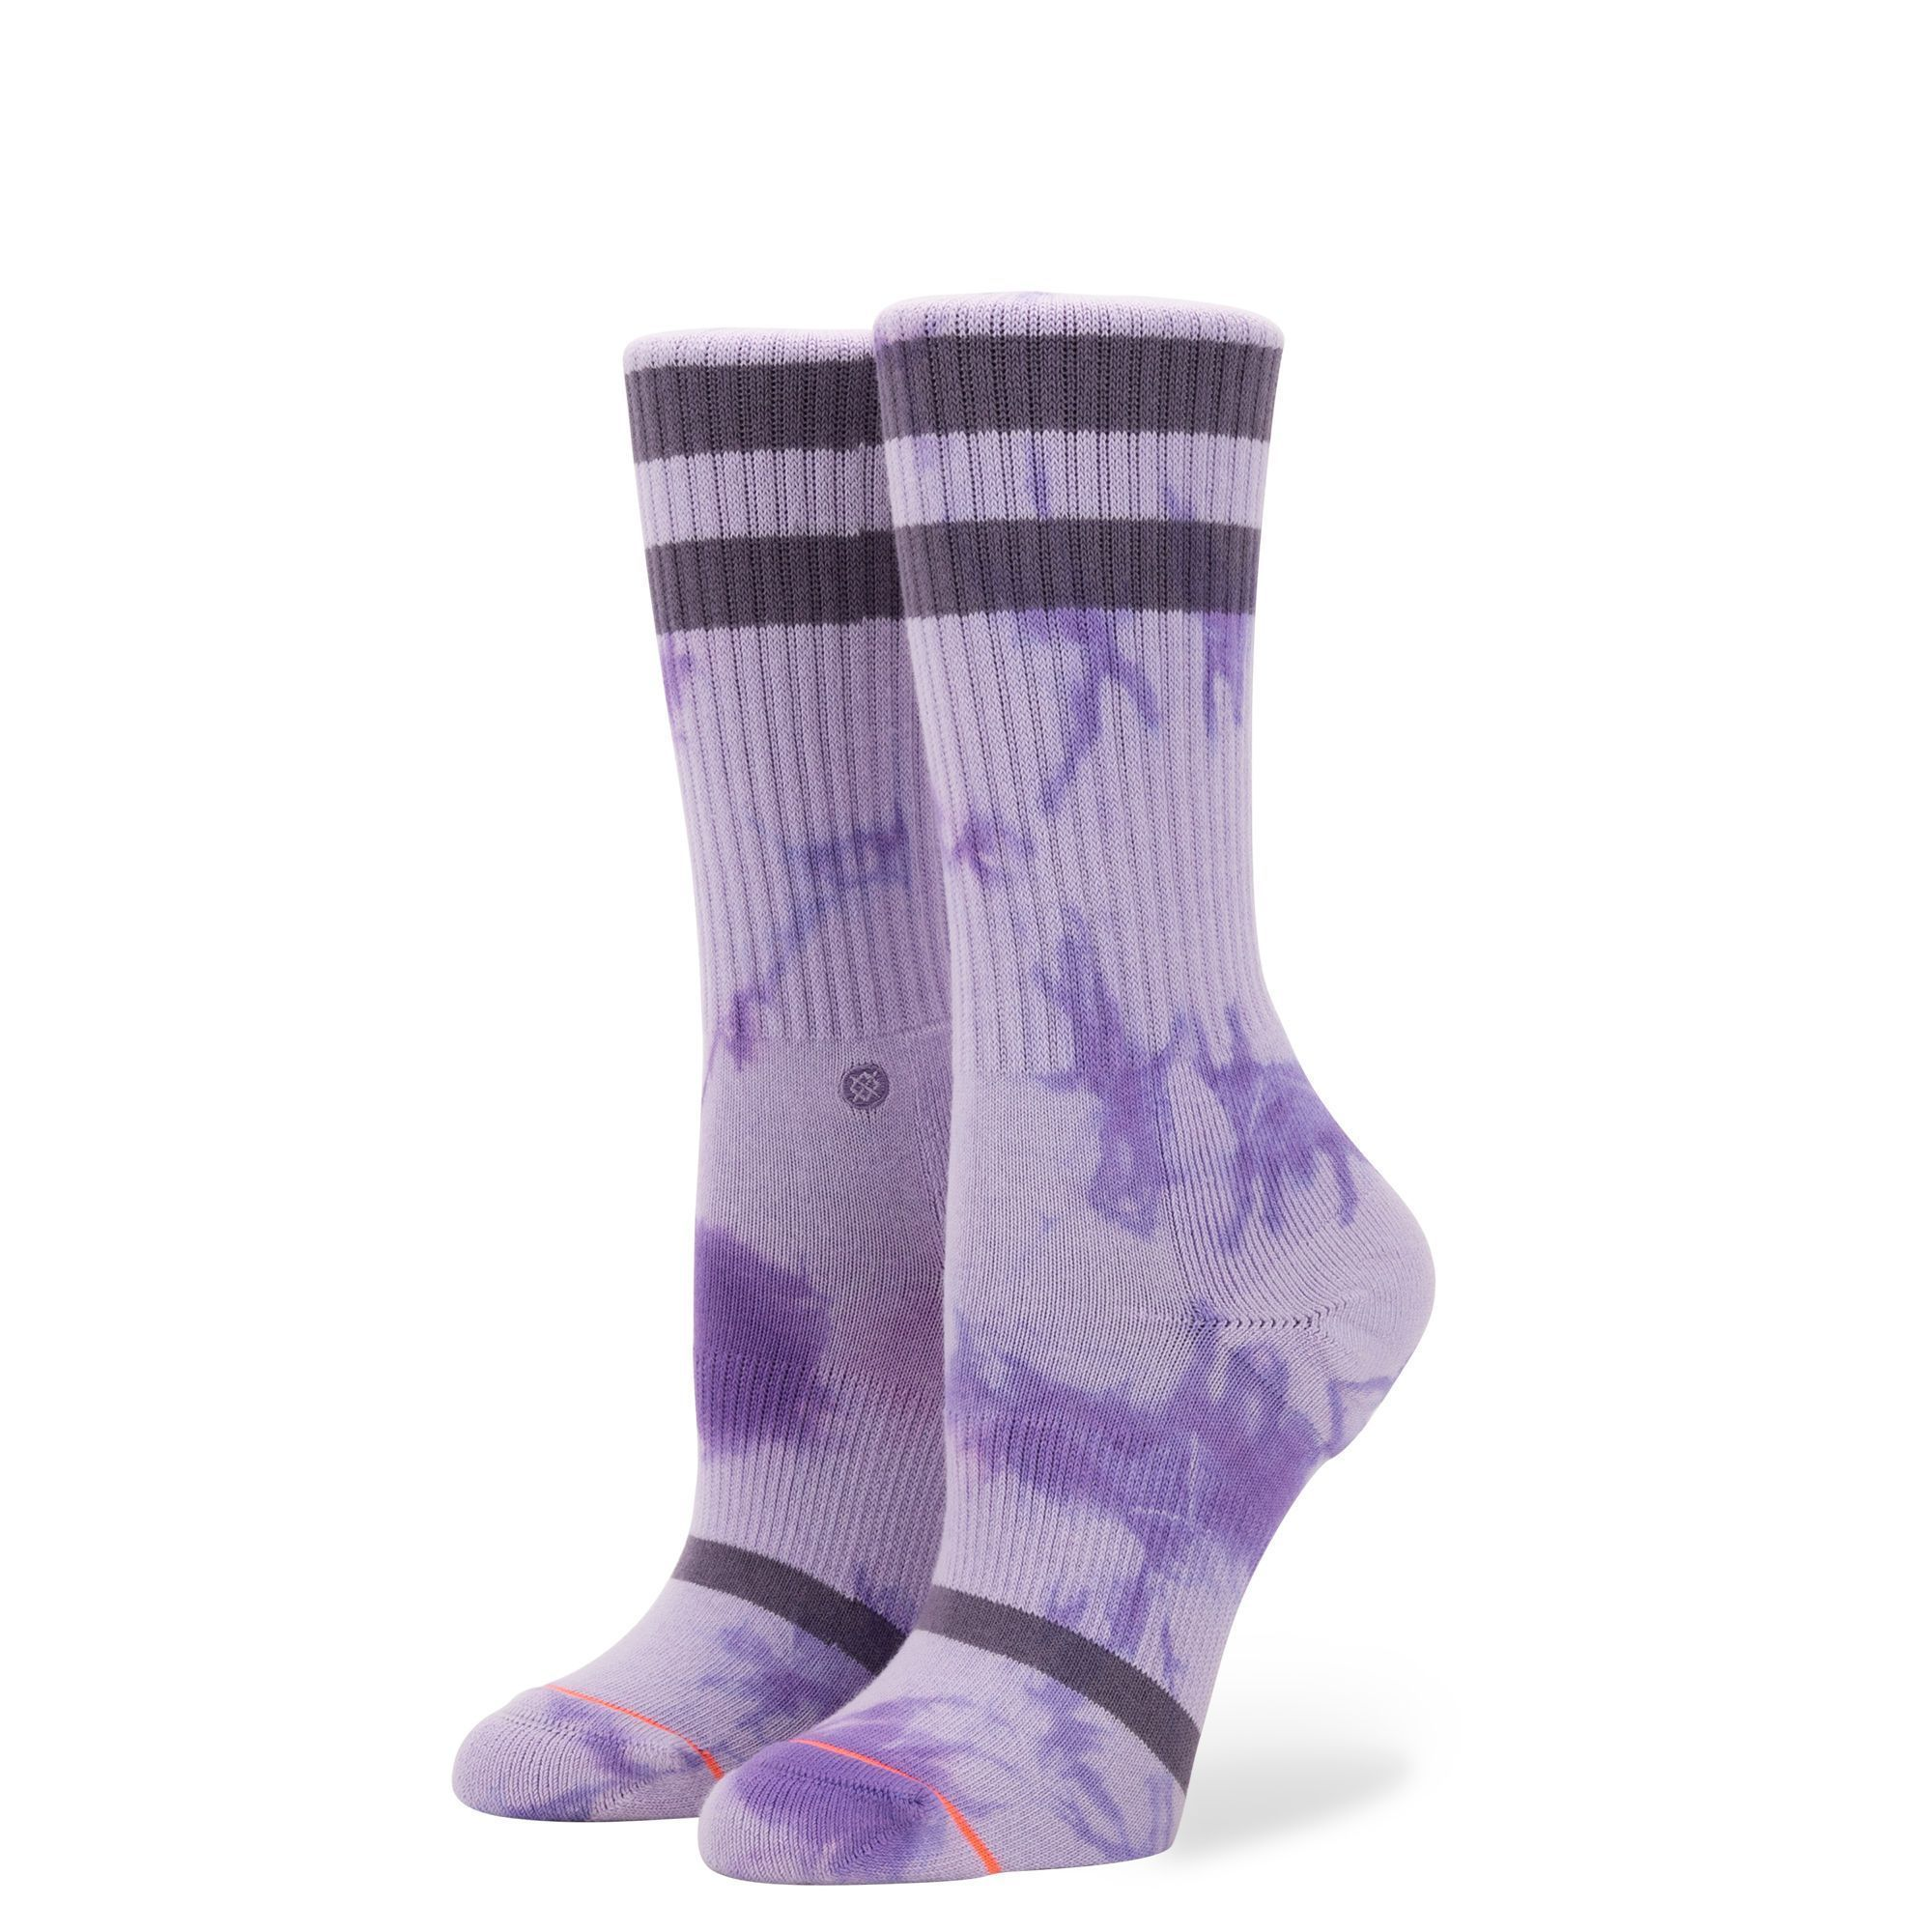 Stance - Classic Uncommon Crew Socks | Women's - Knock Your Socks Off